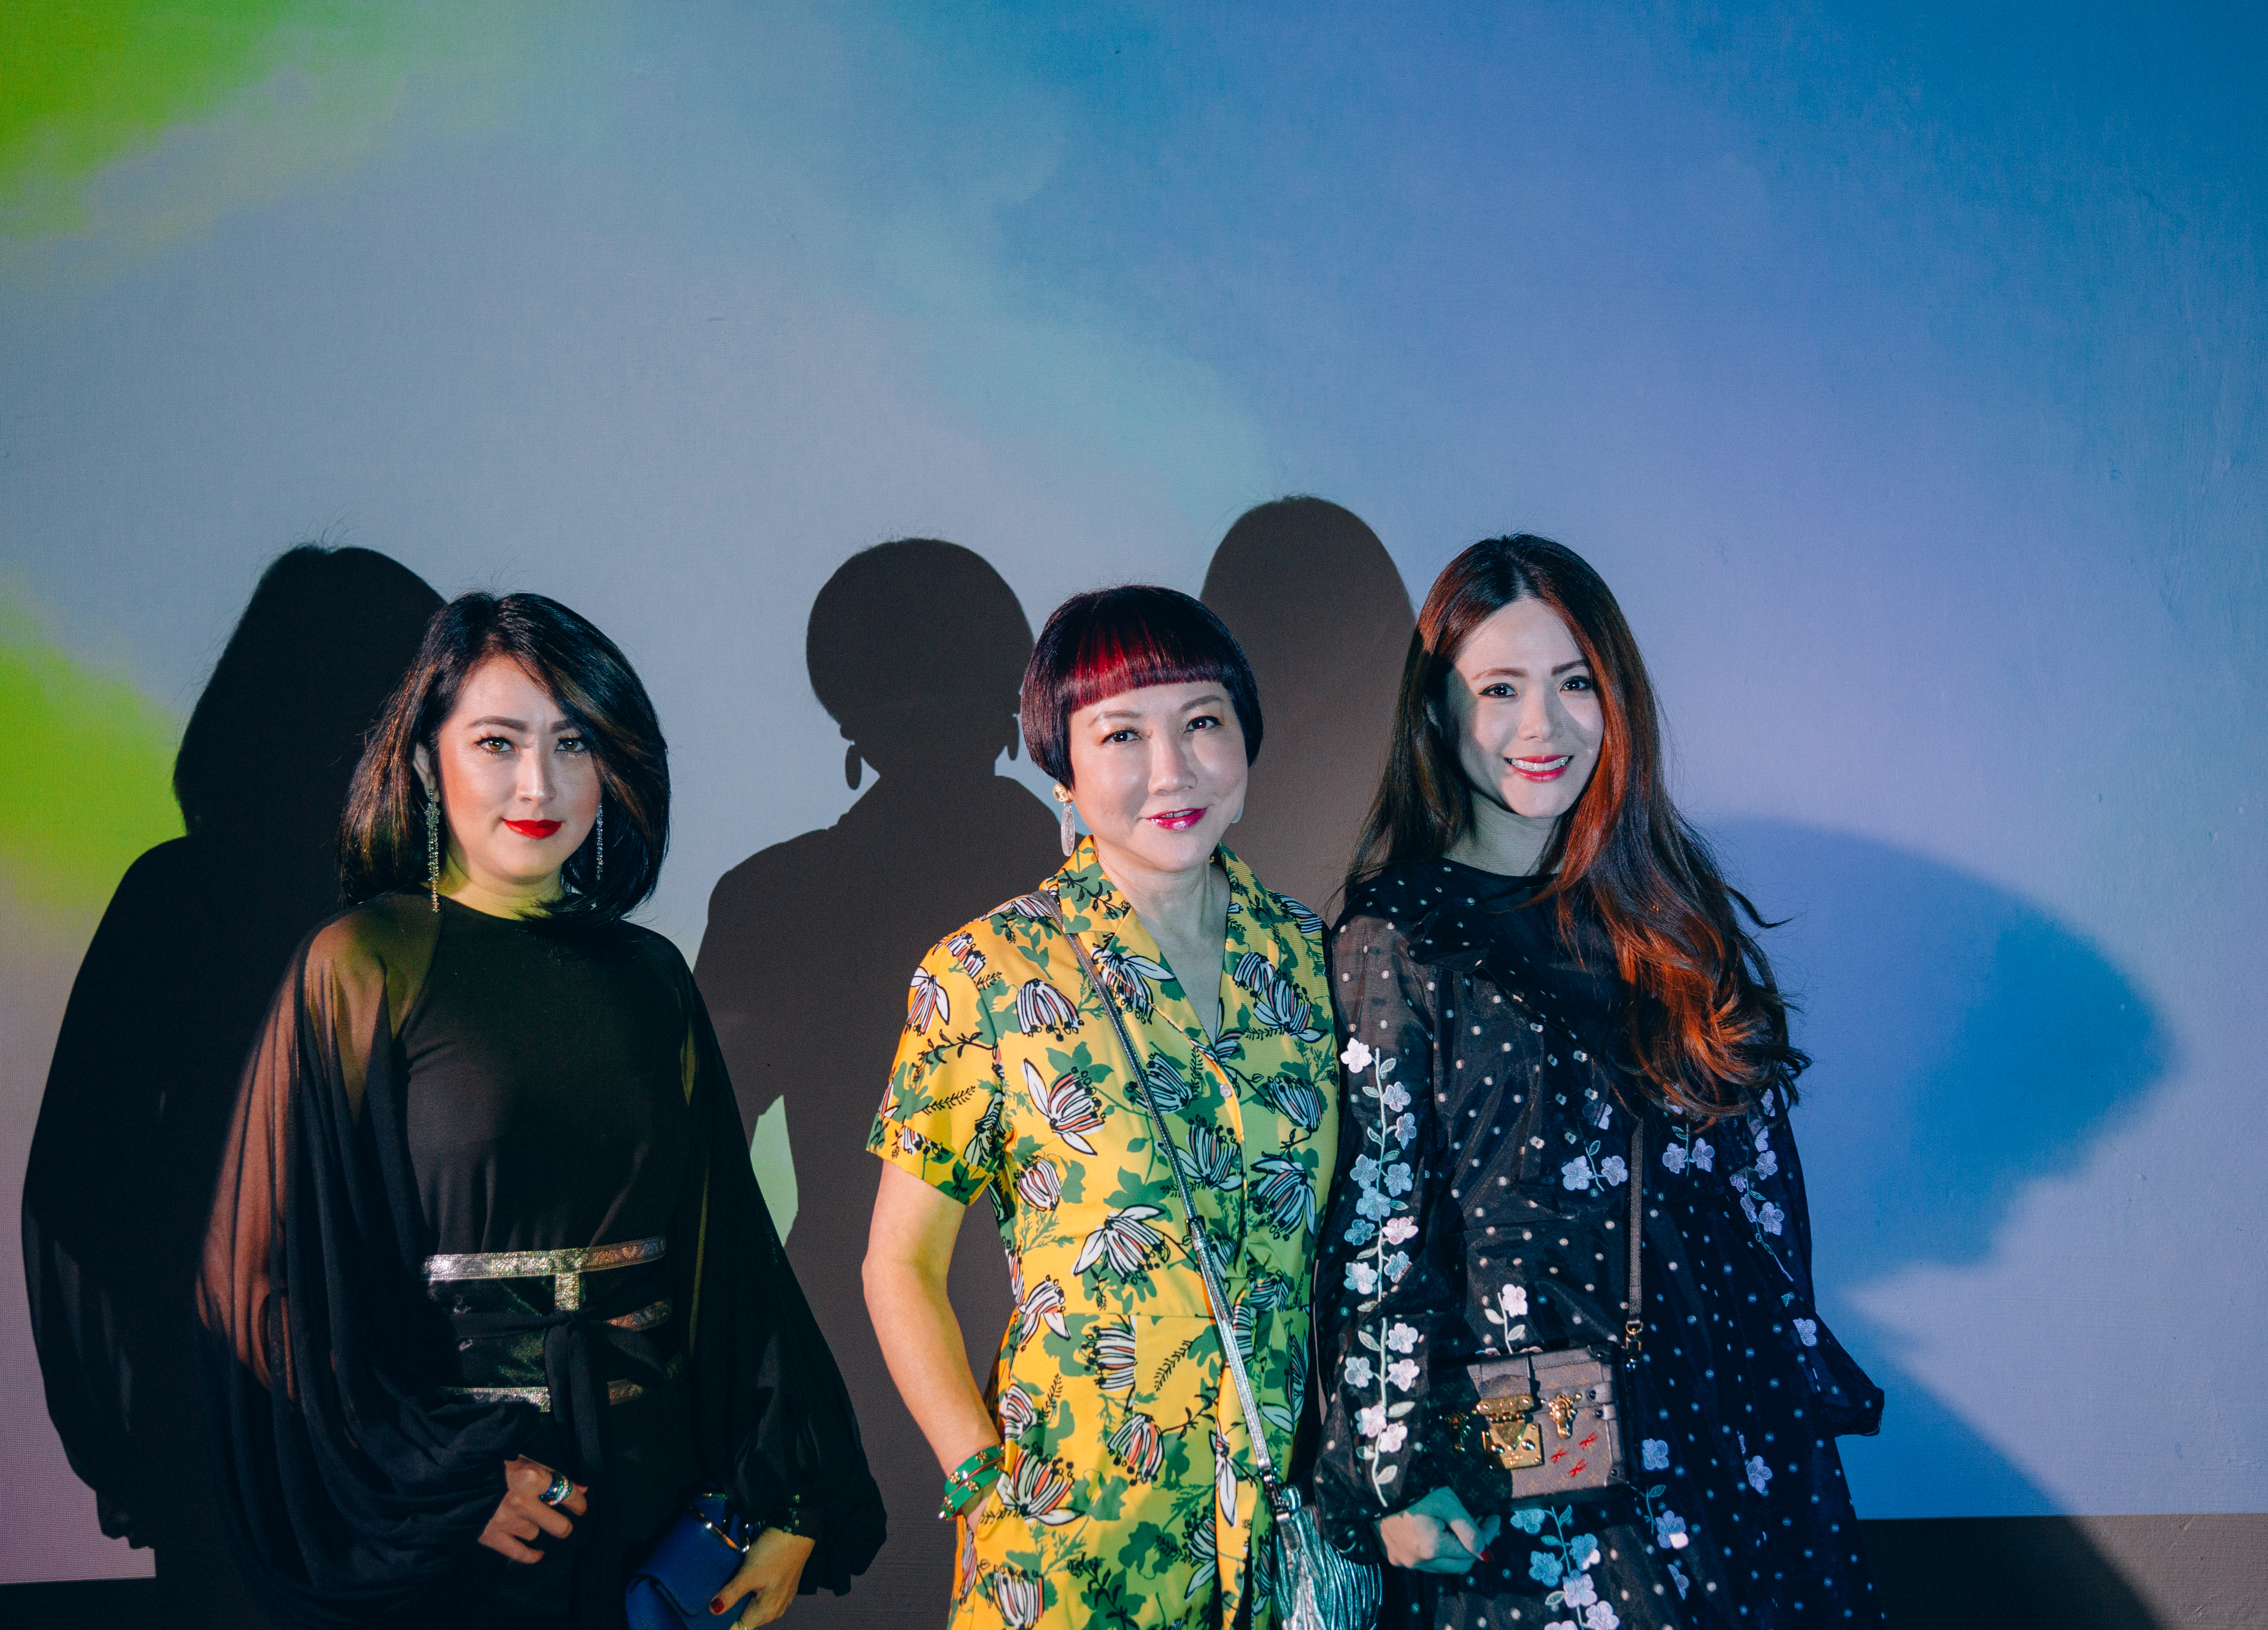 Angela Poppy, Frances Low and Chermaine Pang